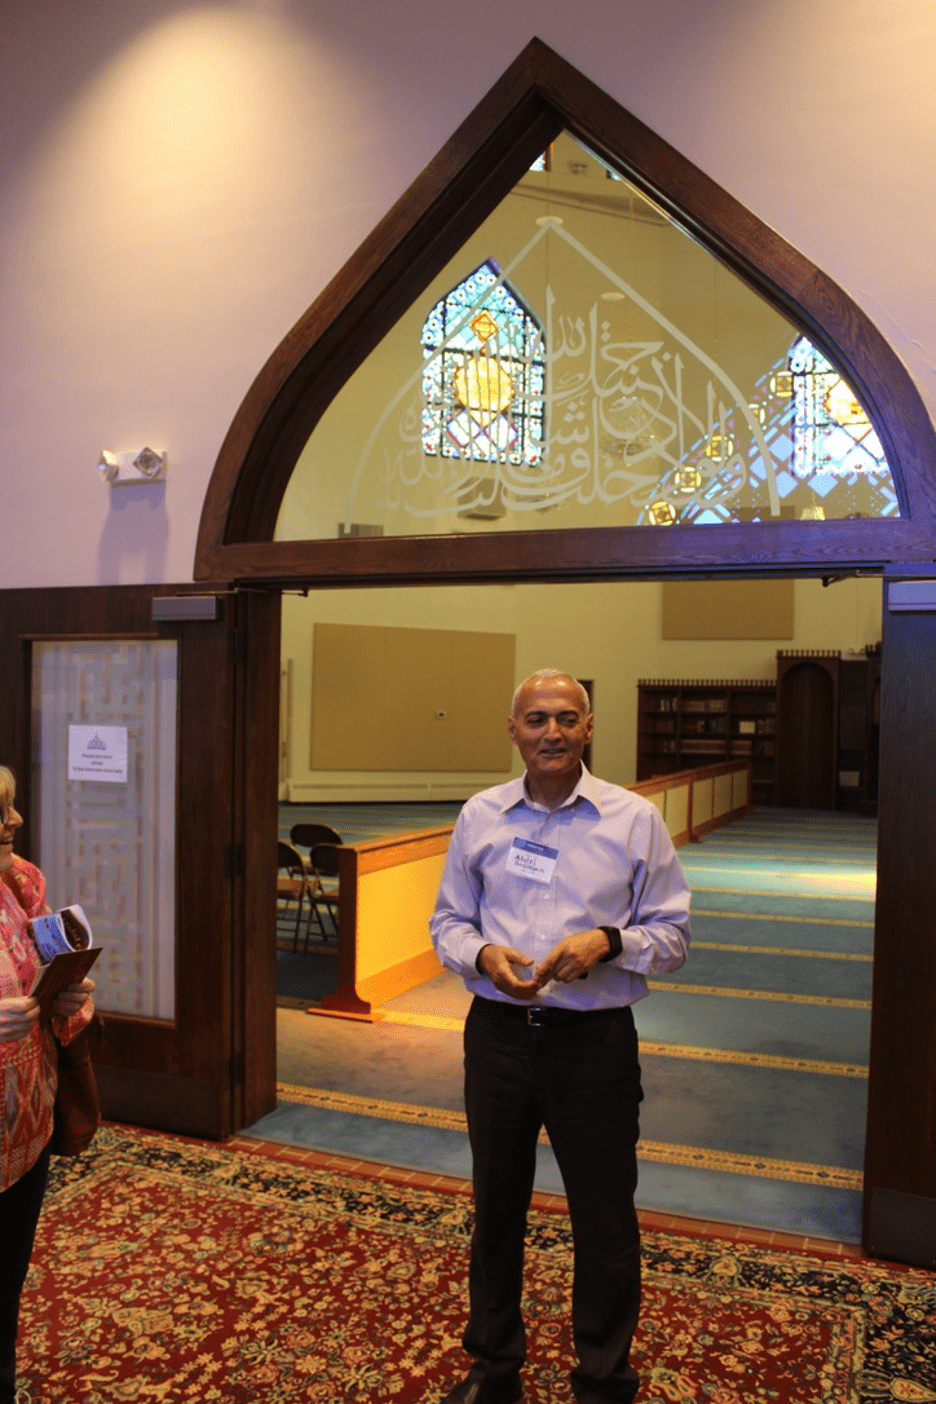 Dr. Abdel-Wahab Soliman leads a tour of the ICGT's prayer facilities